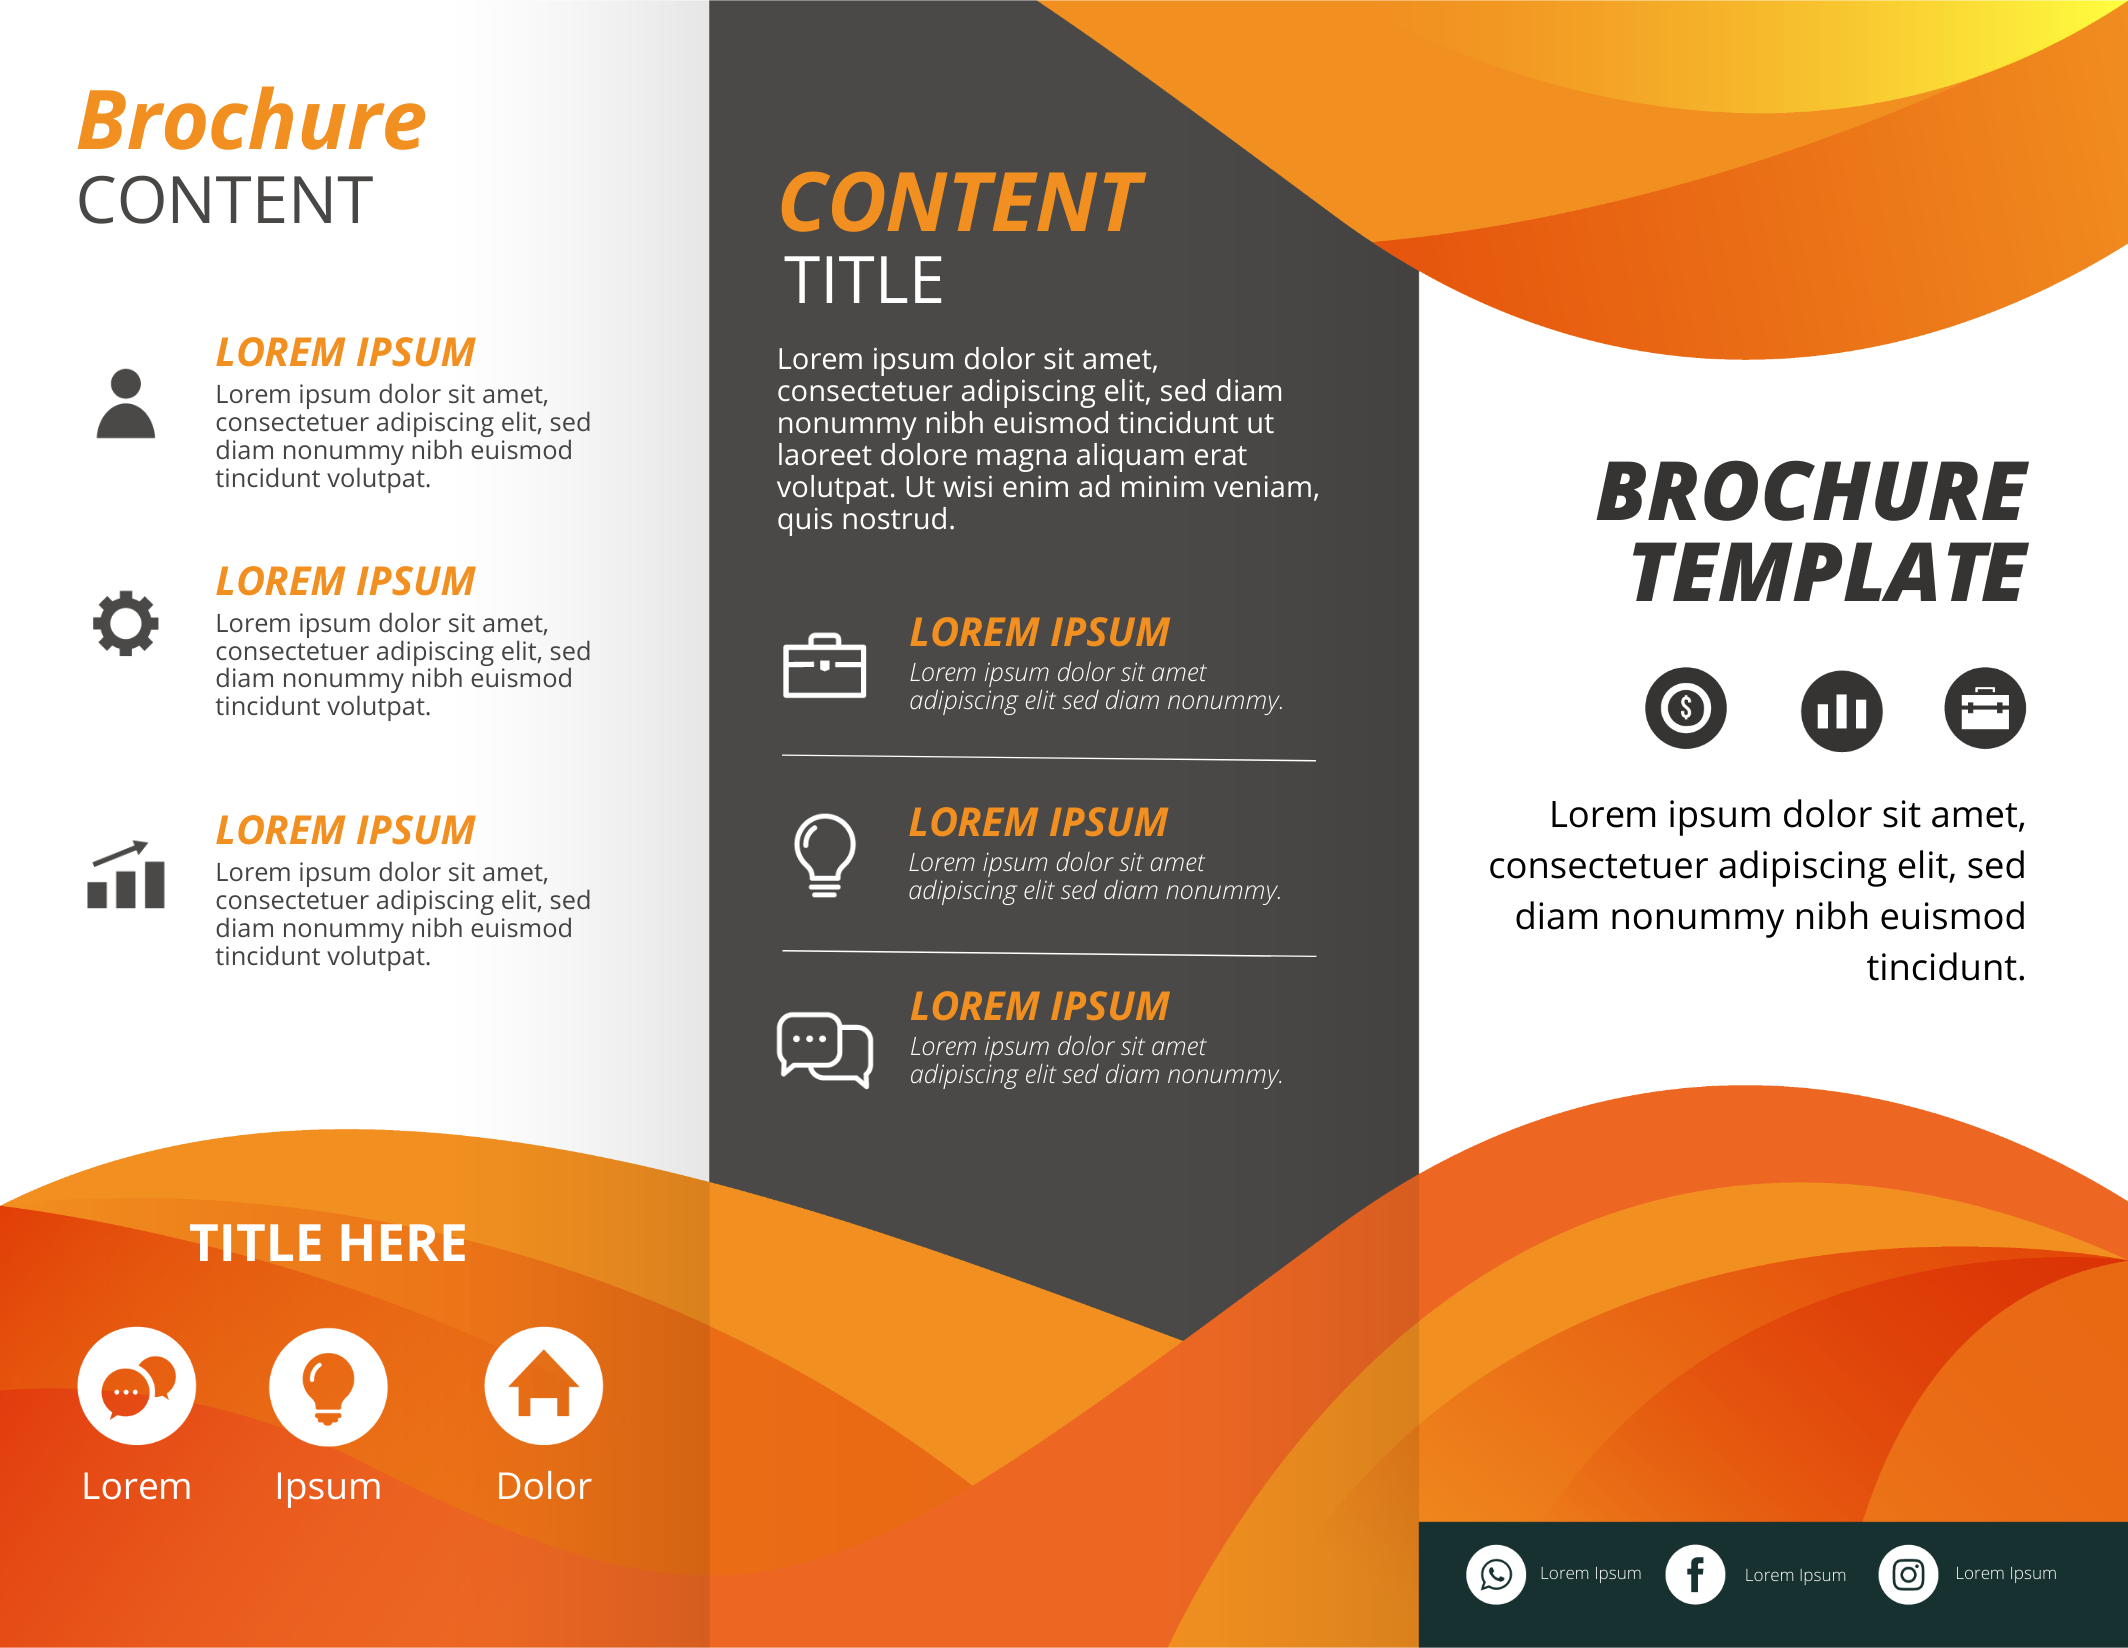 Brochure infographic template